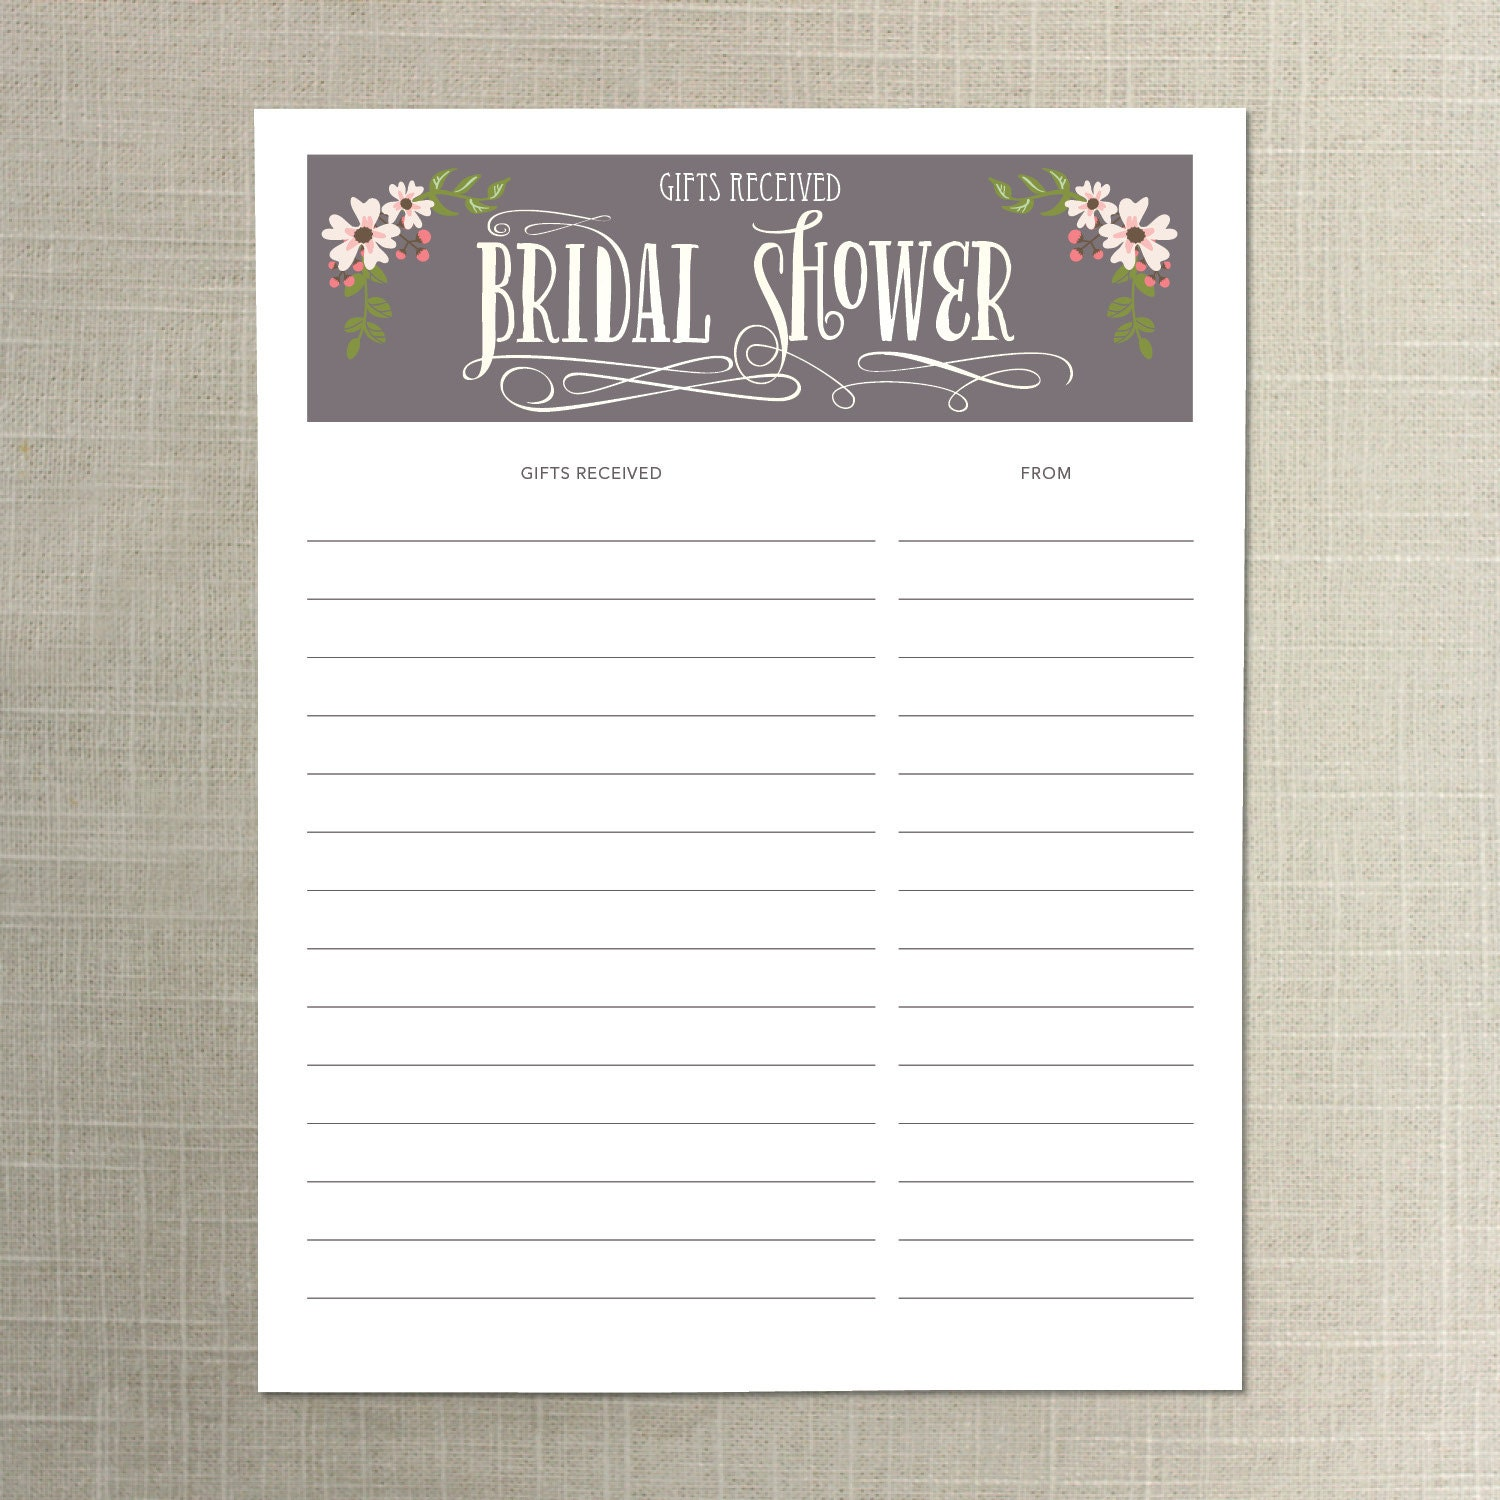 Example Of Wedding Gift List : +Shower+Gift+List+Template Instant Download Bridal Shower Gift List ...